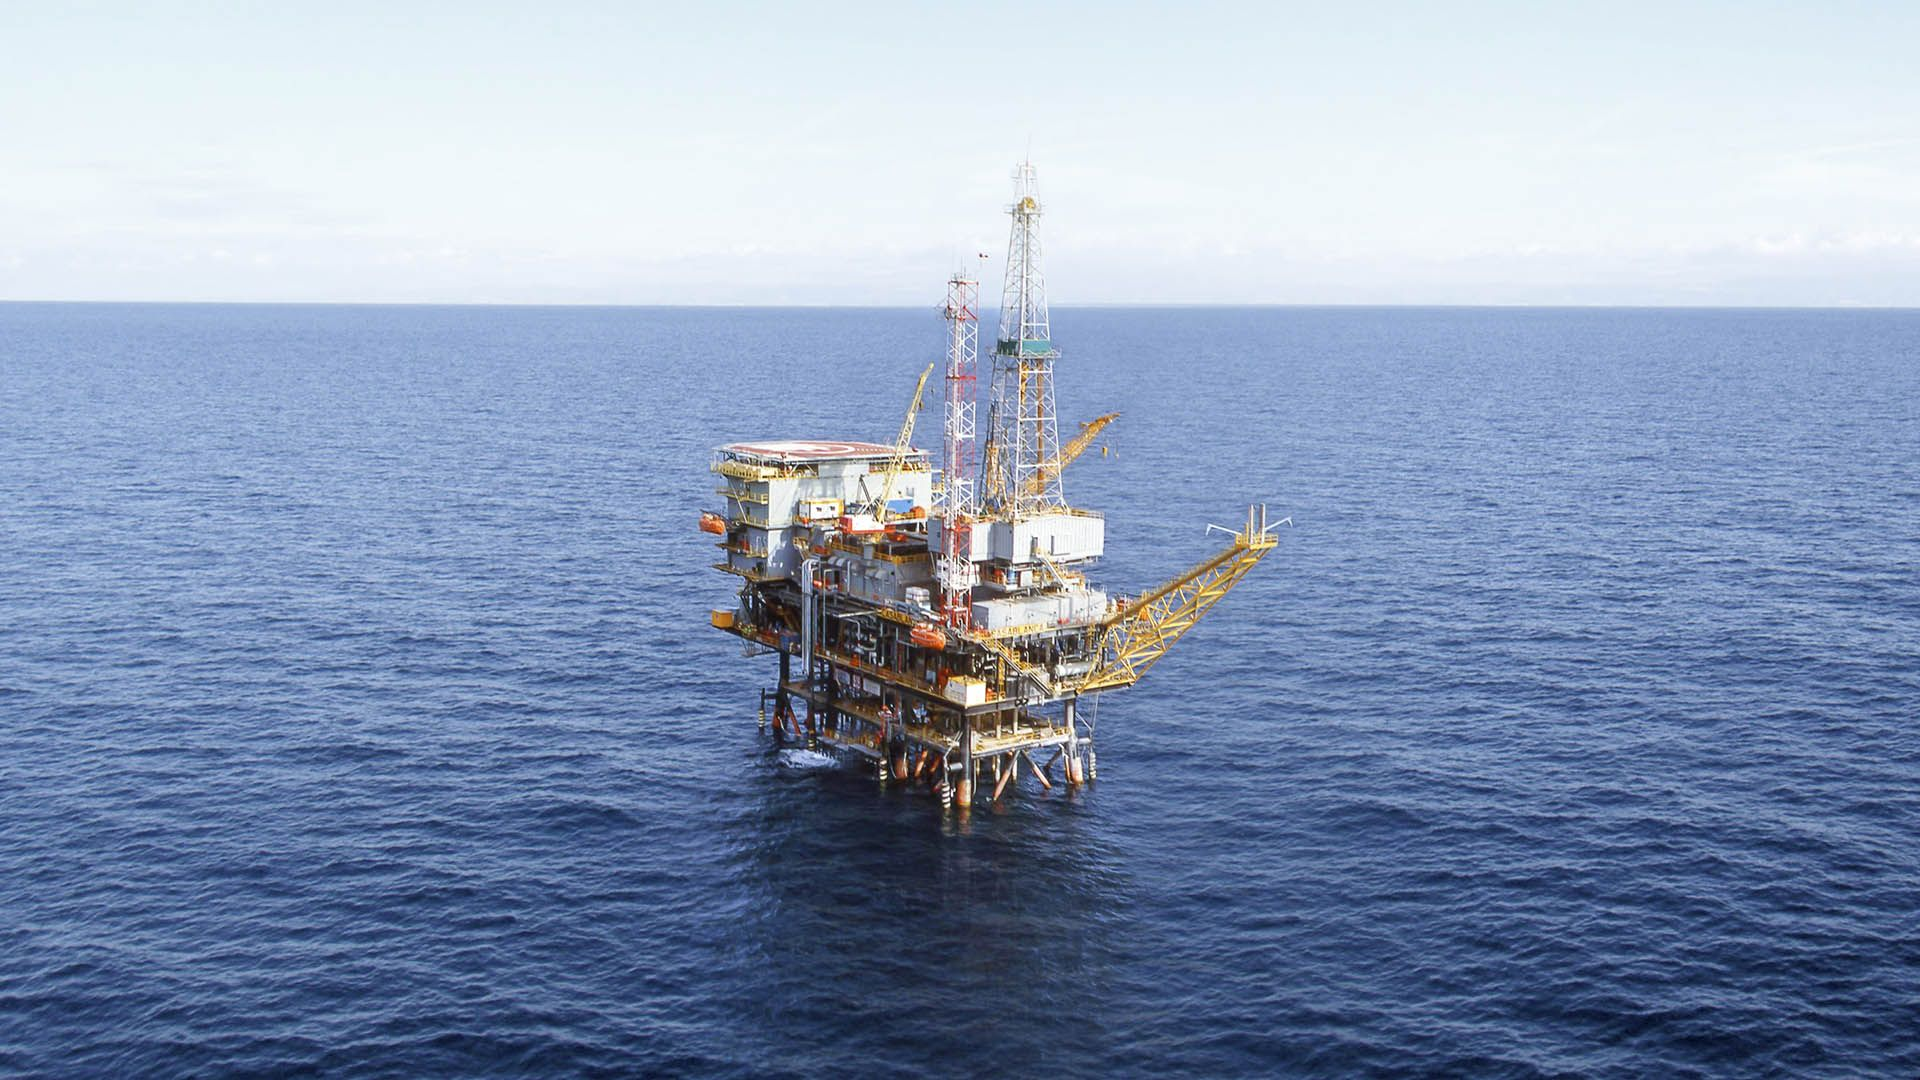 Casablanca Offshore Platform in Spain in operation